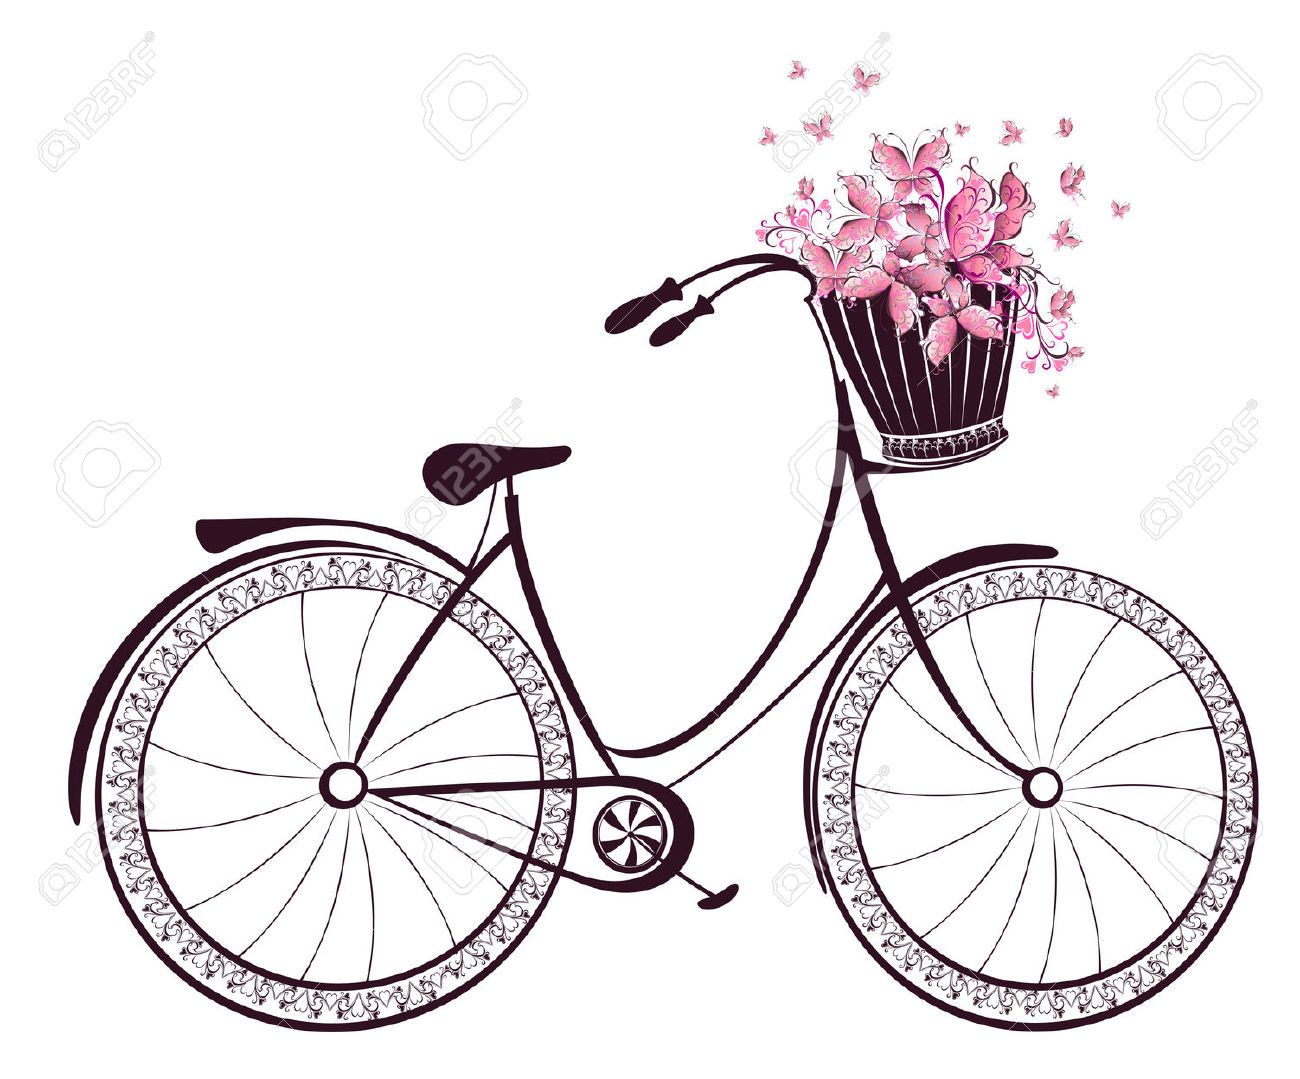 Biking clipart flower. Bicycle with a basket